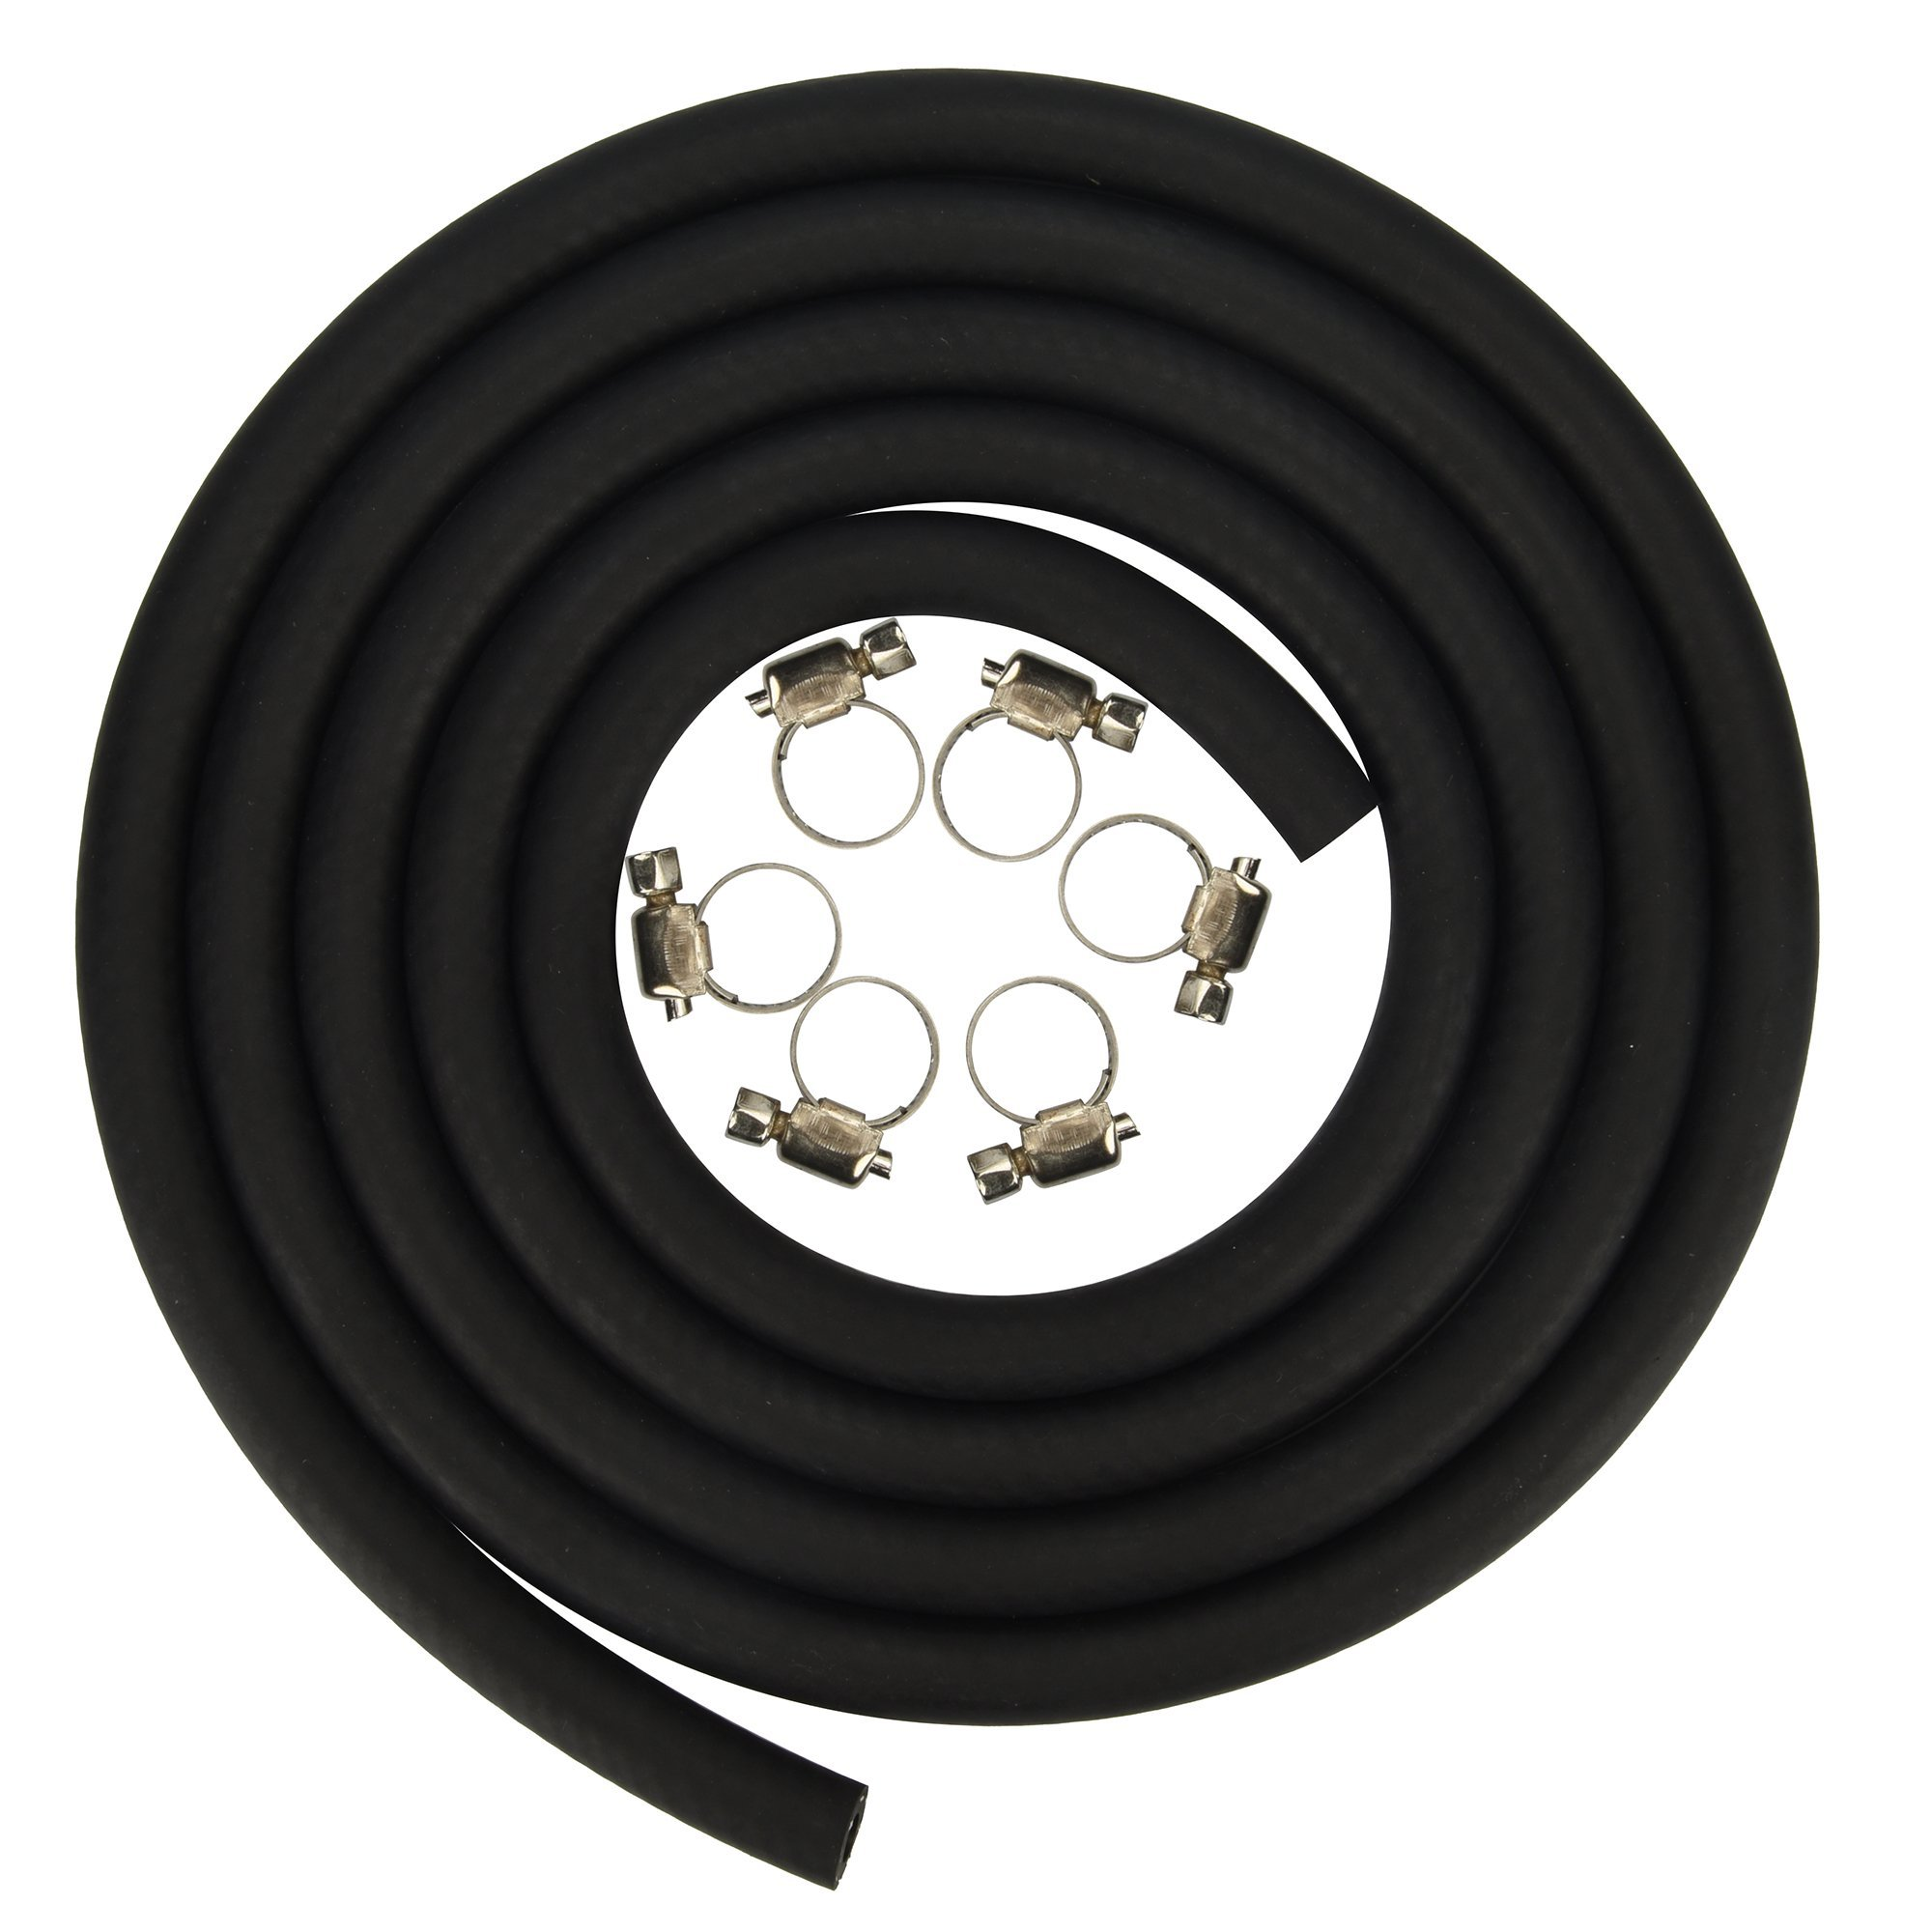 Cococart 5/16 inch ID x 6.5 Feet/2m Length NBR/PVC SAE30R6 Polyester Reinforced Fuel Line Tubing Hose